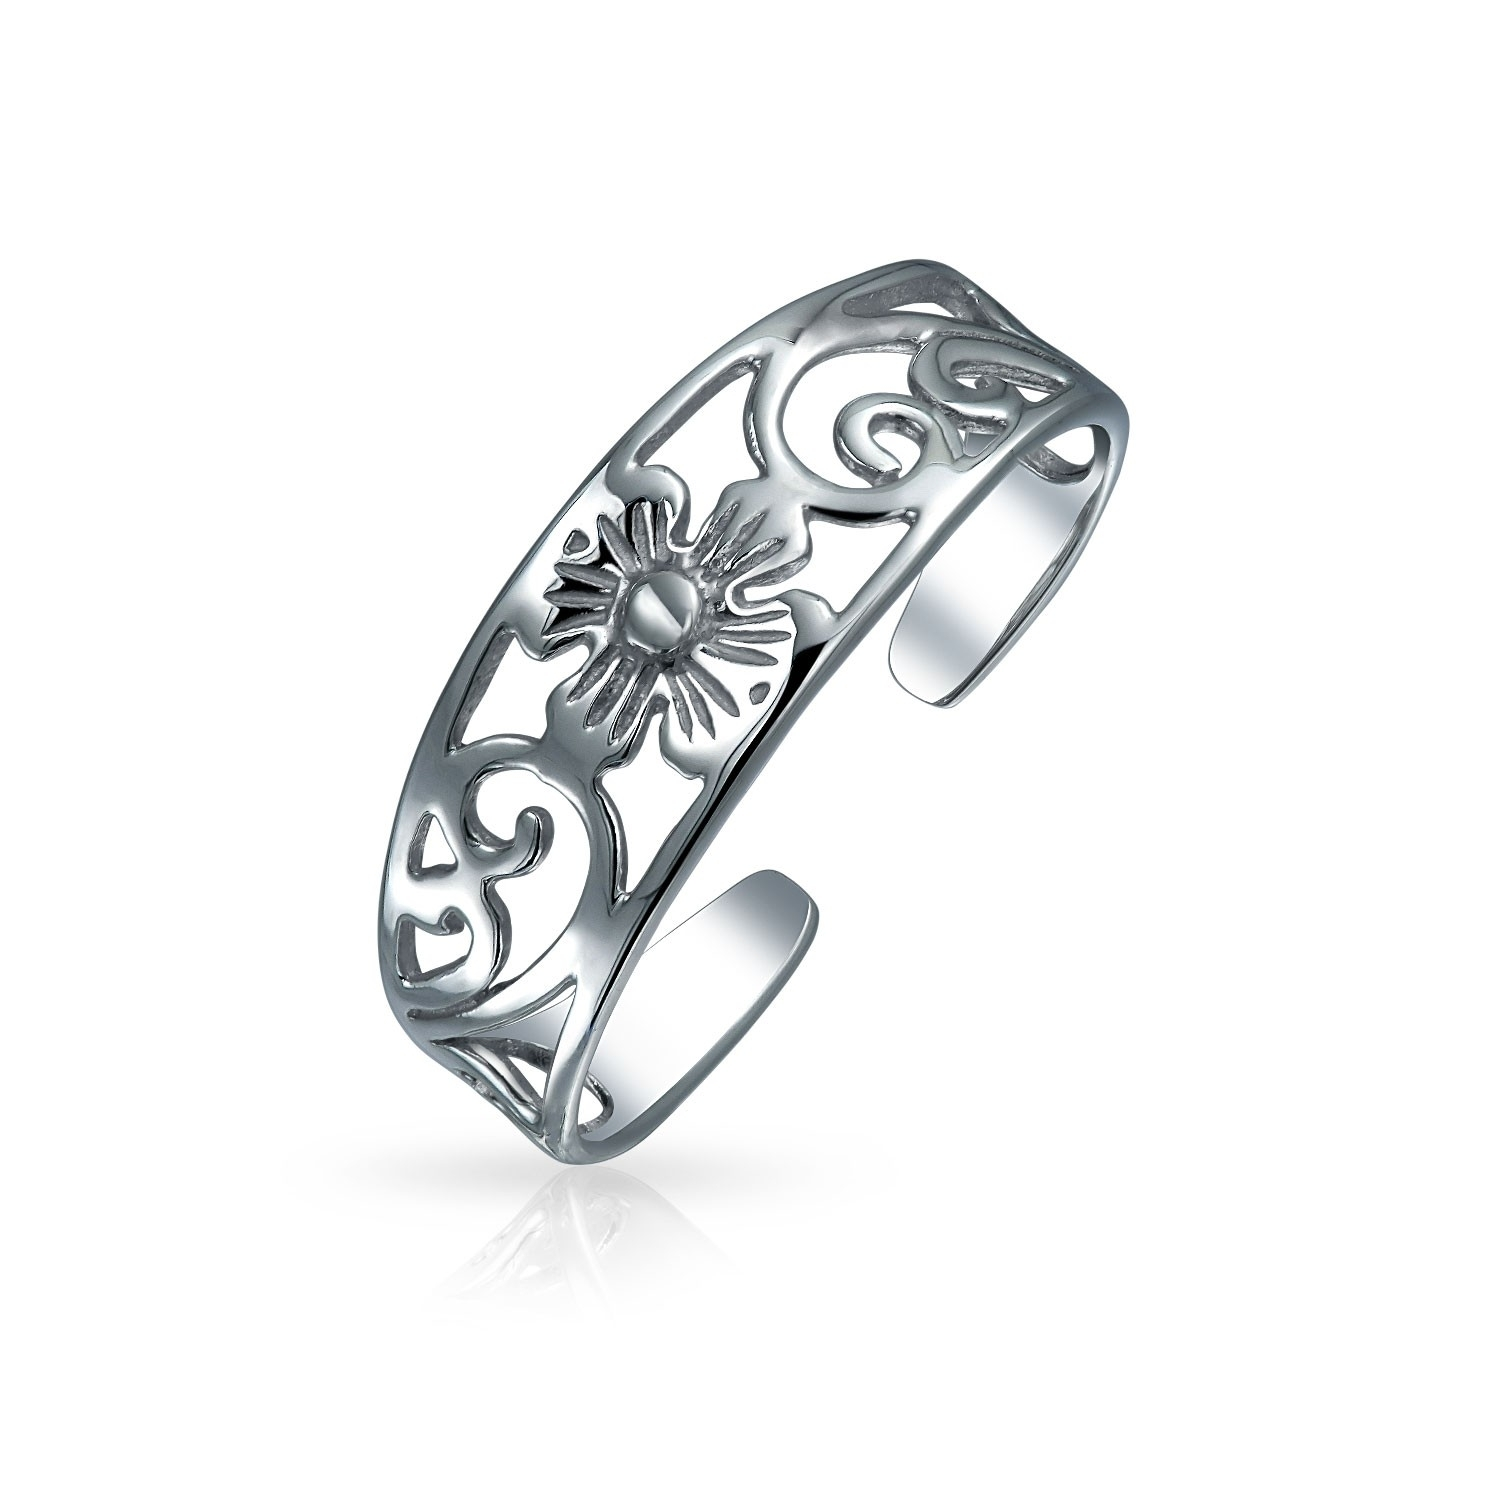 Adjustable Filigree Flower Toe Ring 925 Sterling Silver Midi Rings Regarding Newest Platinum Toe Rings (View 2 of 15)